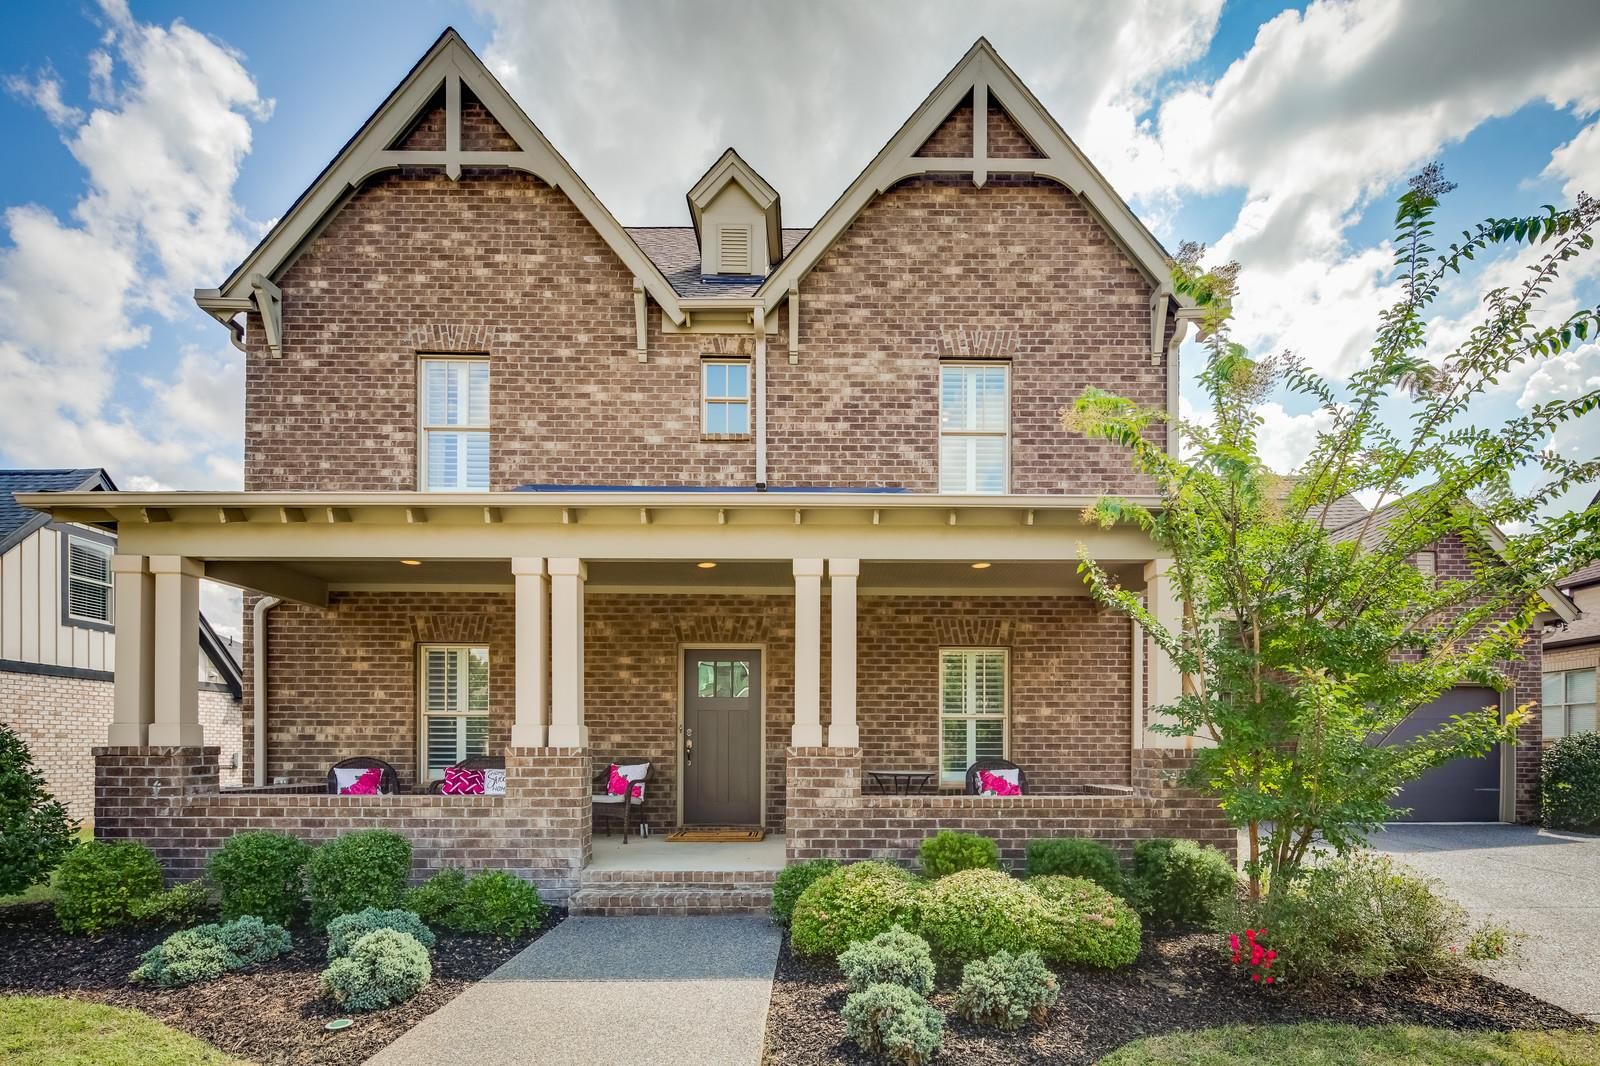 330 Finnhorse Ln, Franklin, TN 37064